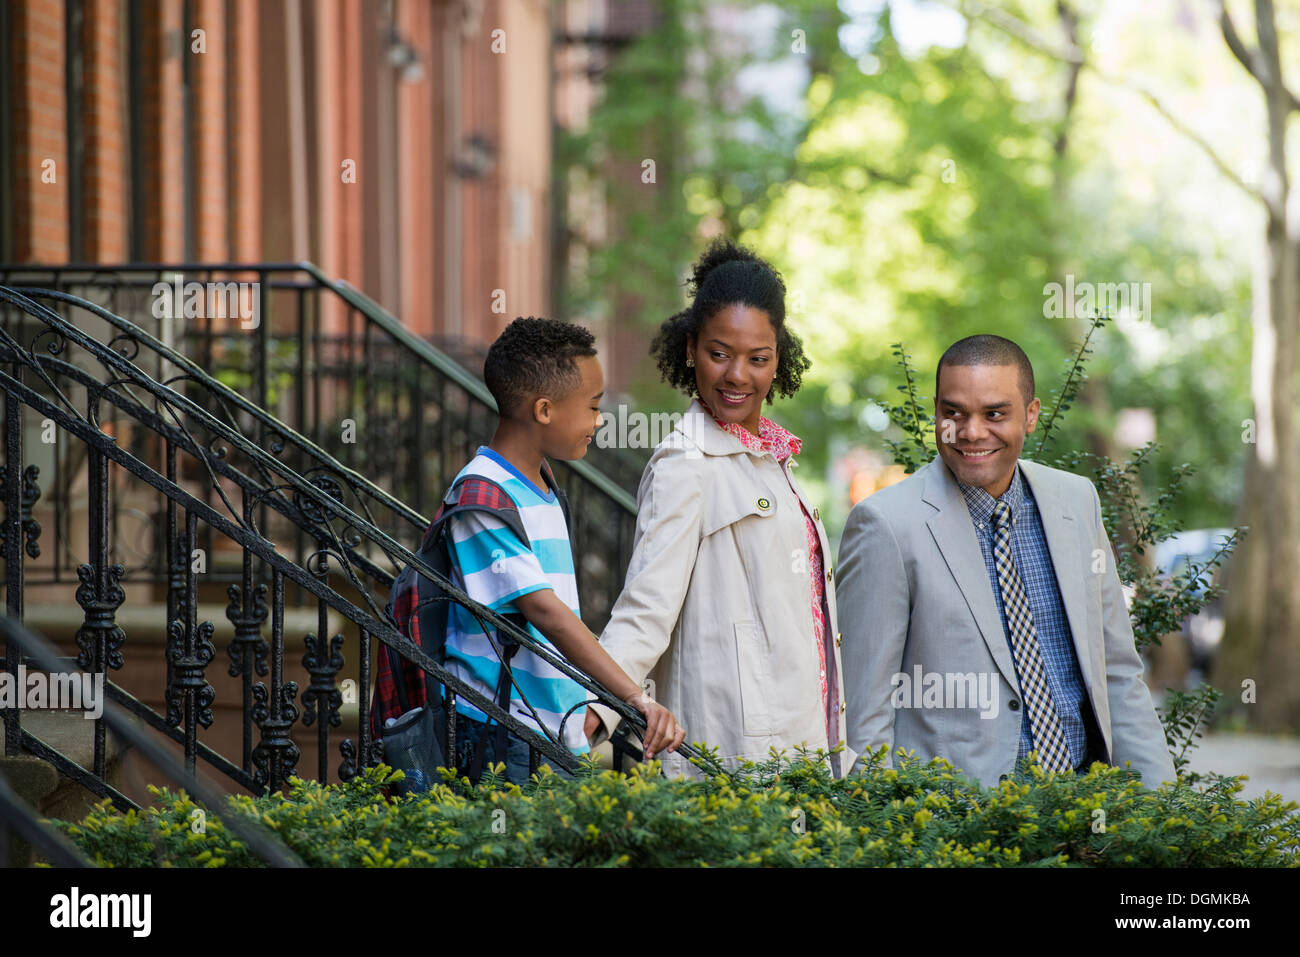 A family outdoors in the city. Two parents and a young boy walking together. - Stock Image